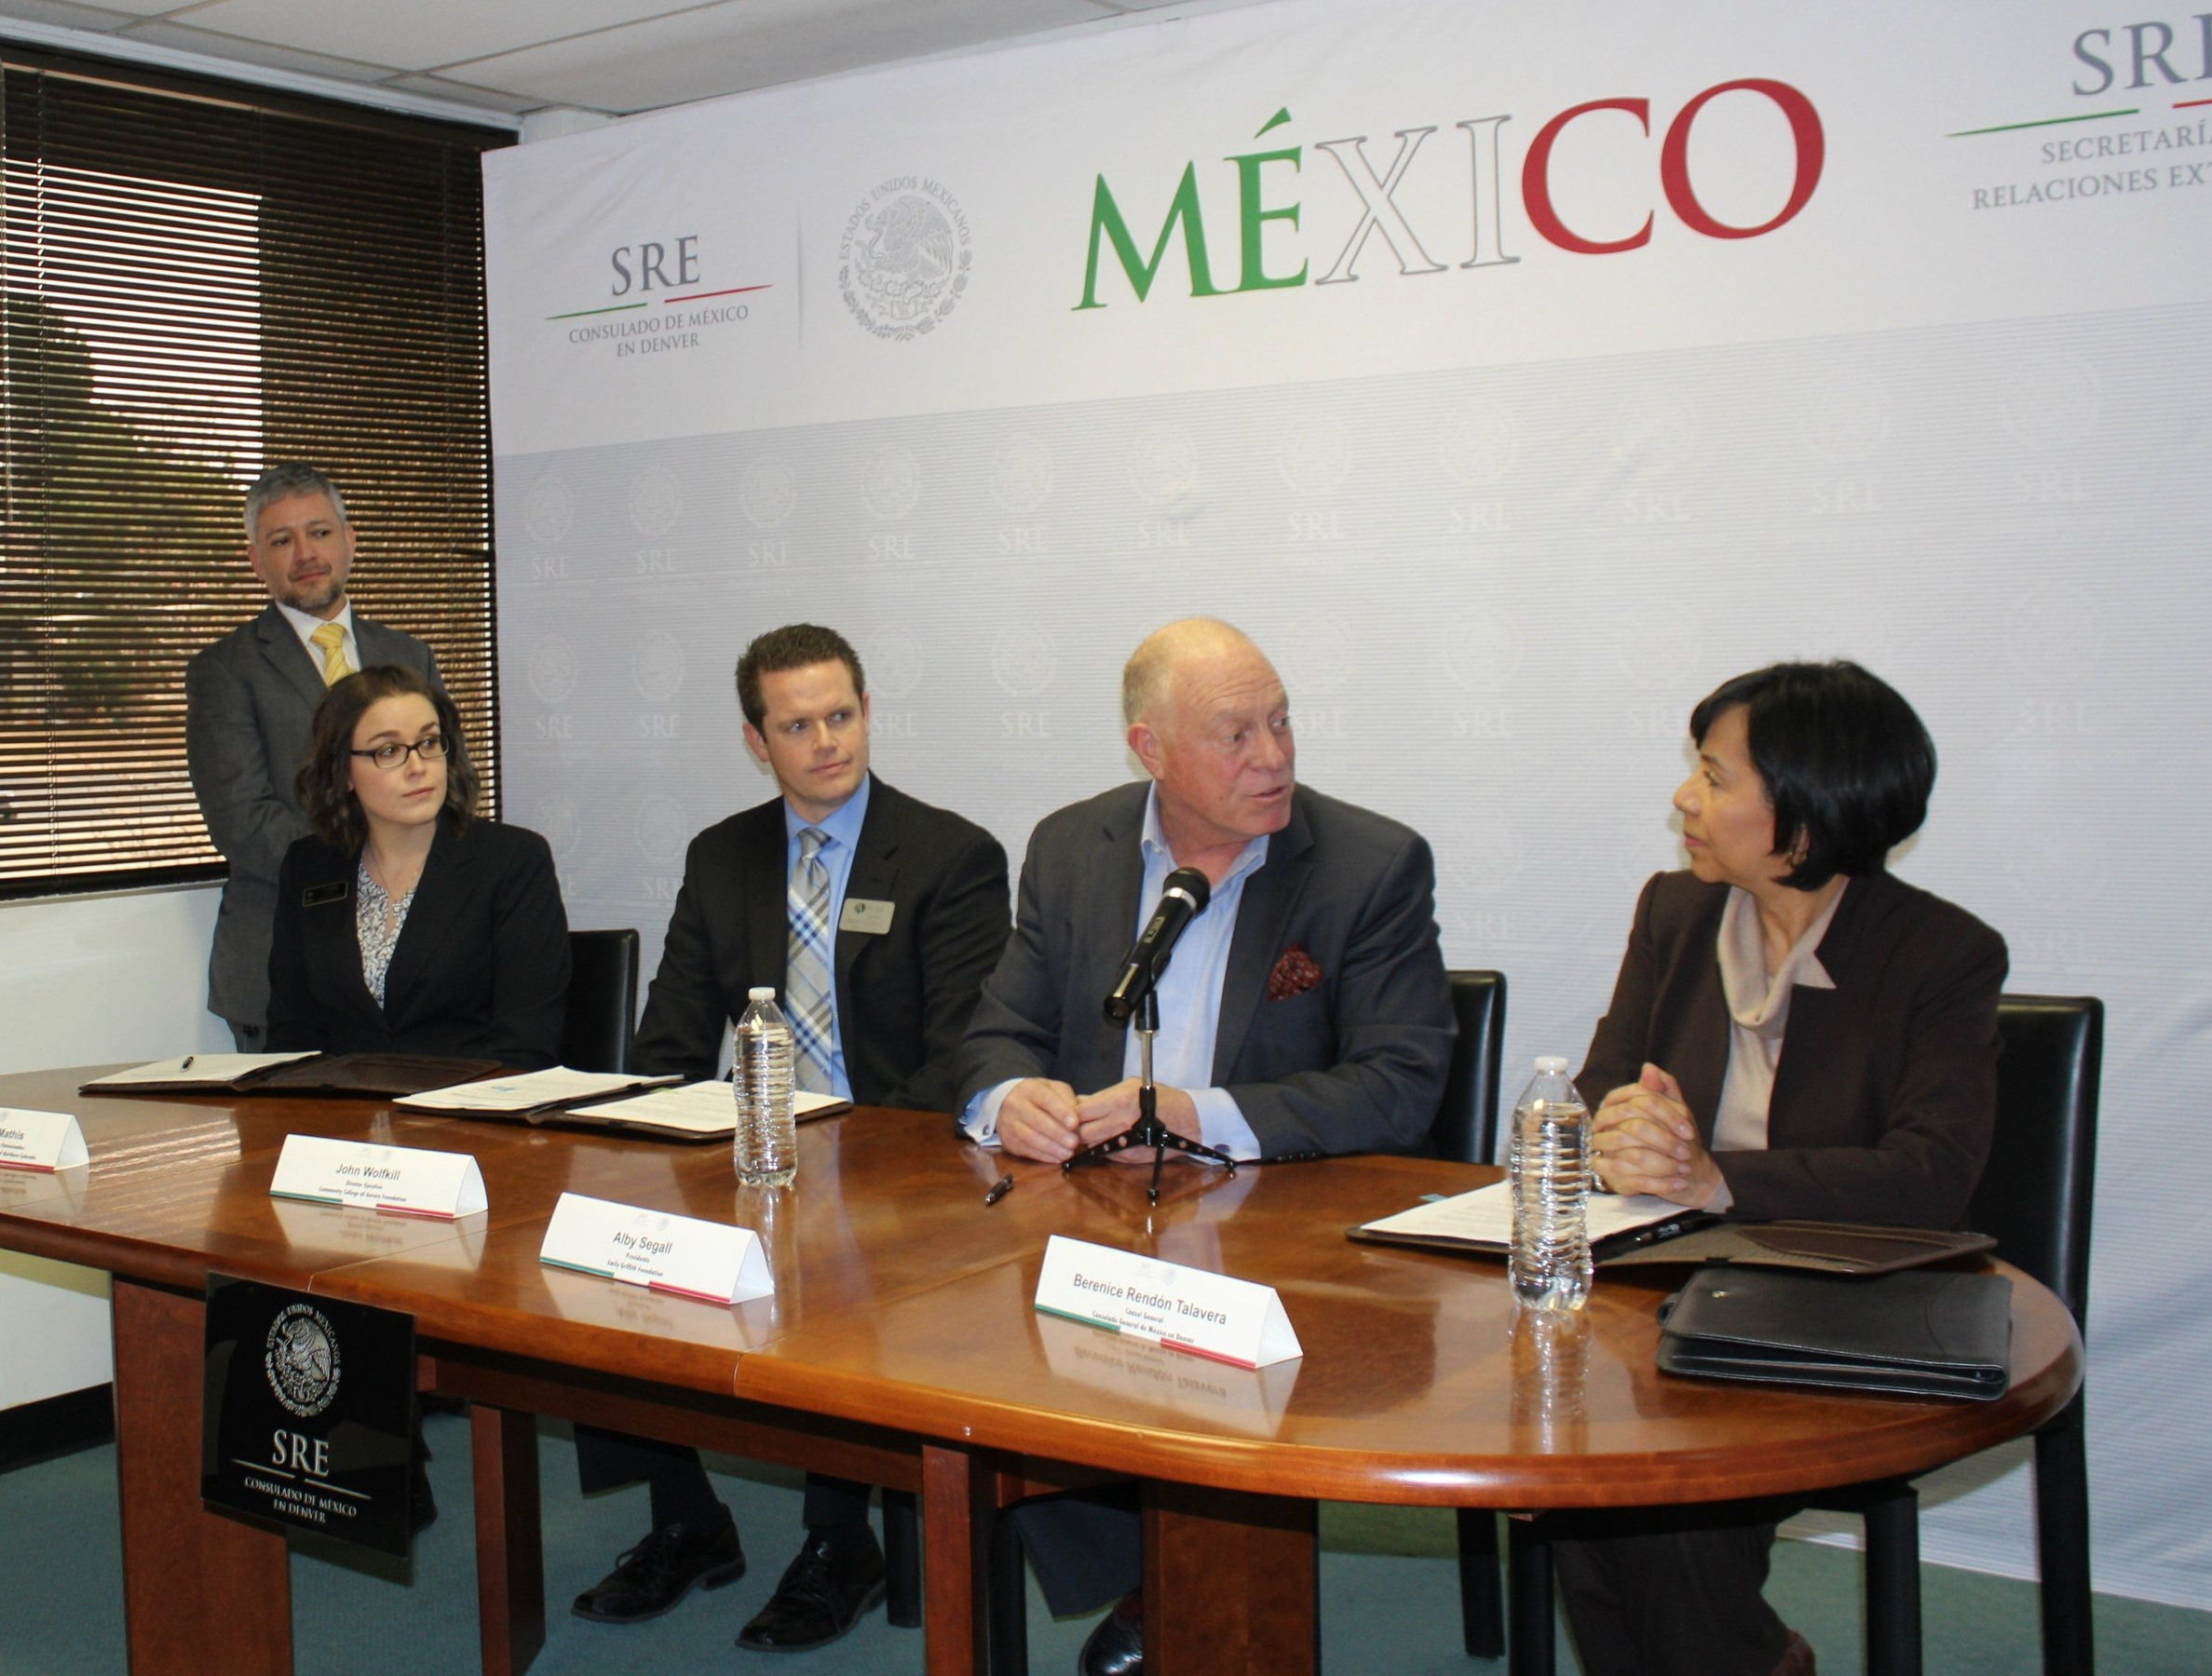 Consul General of Mexico, Berenice Rendón Talavera, signs a Memorandum of Understanding with Emily Griffith Foundation President, Alby Segall, at her left.